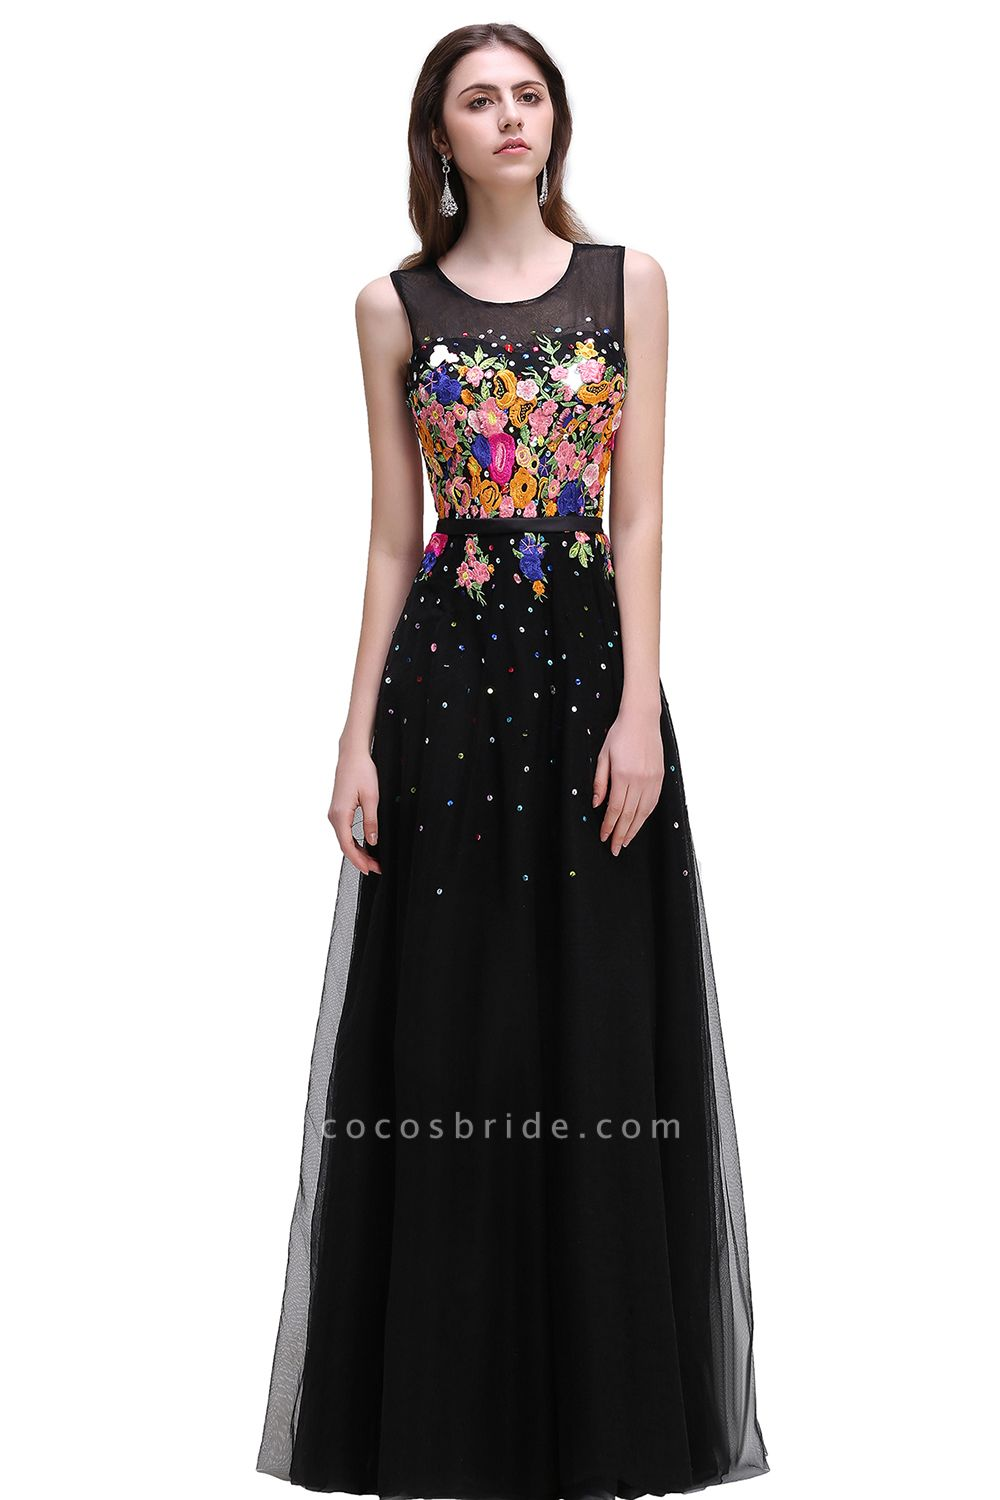 CAMERON   A-line Jewel Neck Tulle Black Prom Dresses with Embroidery Flowers